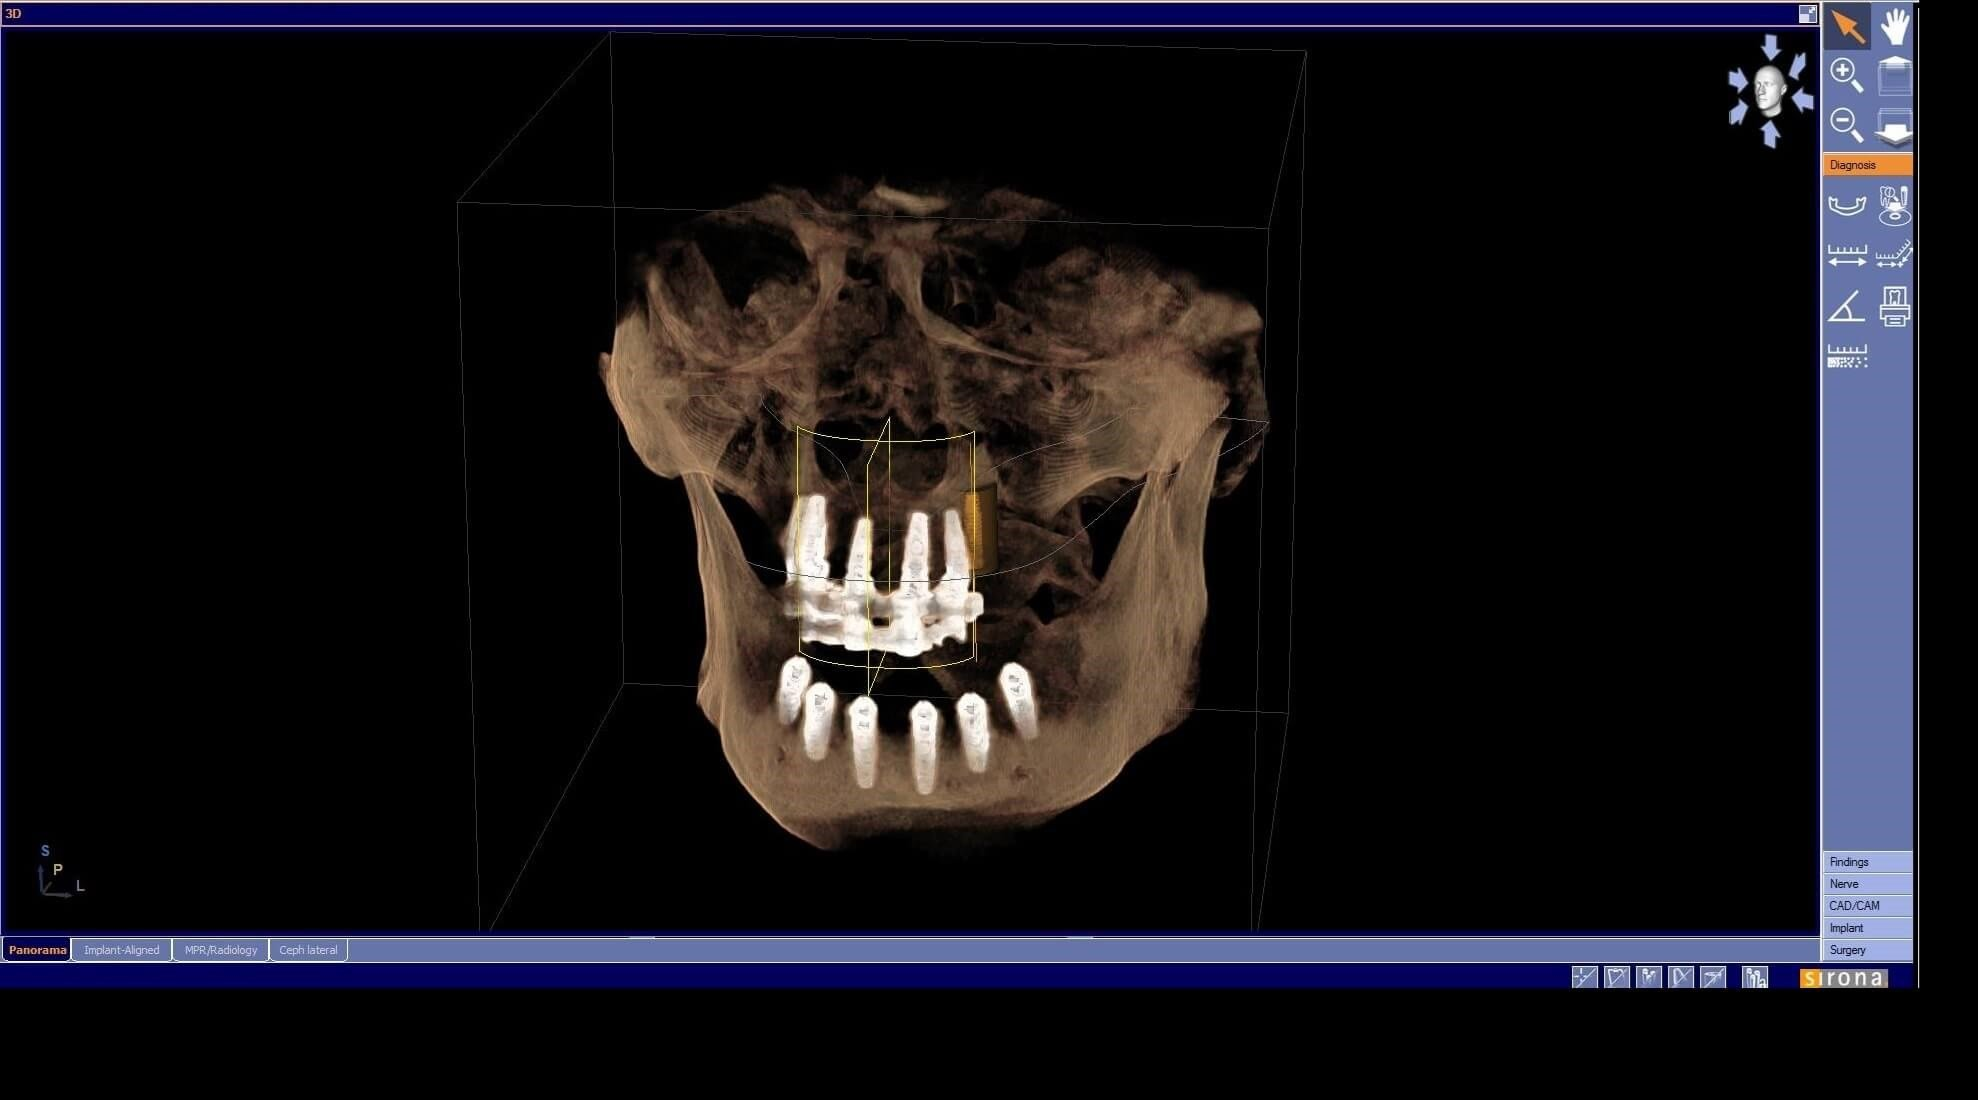 PAN and 3D Scan of implants 3D Scan